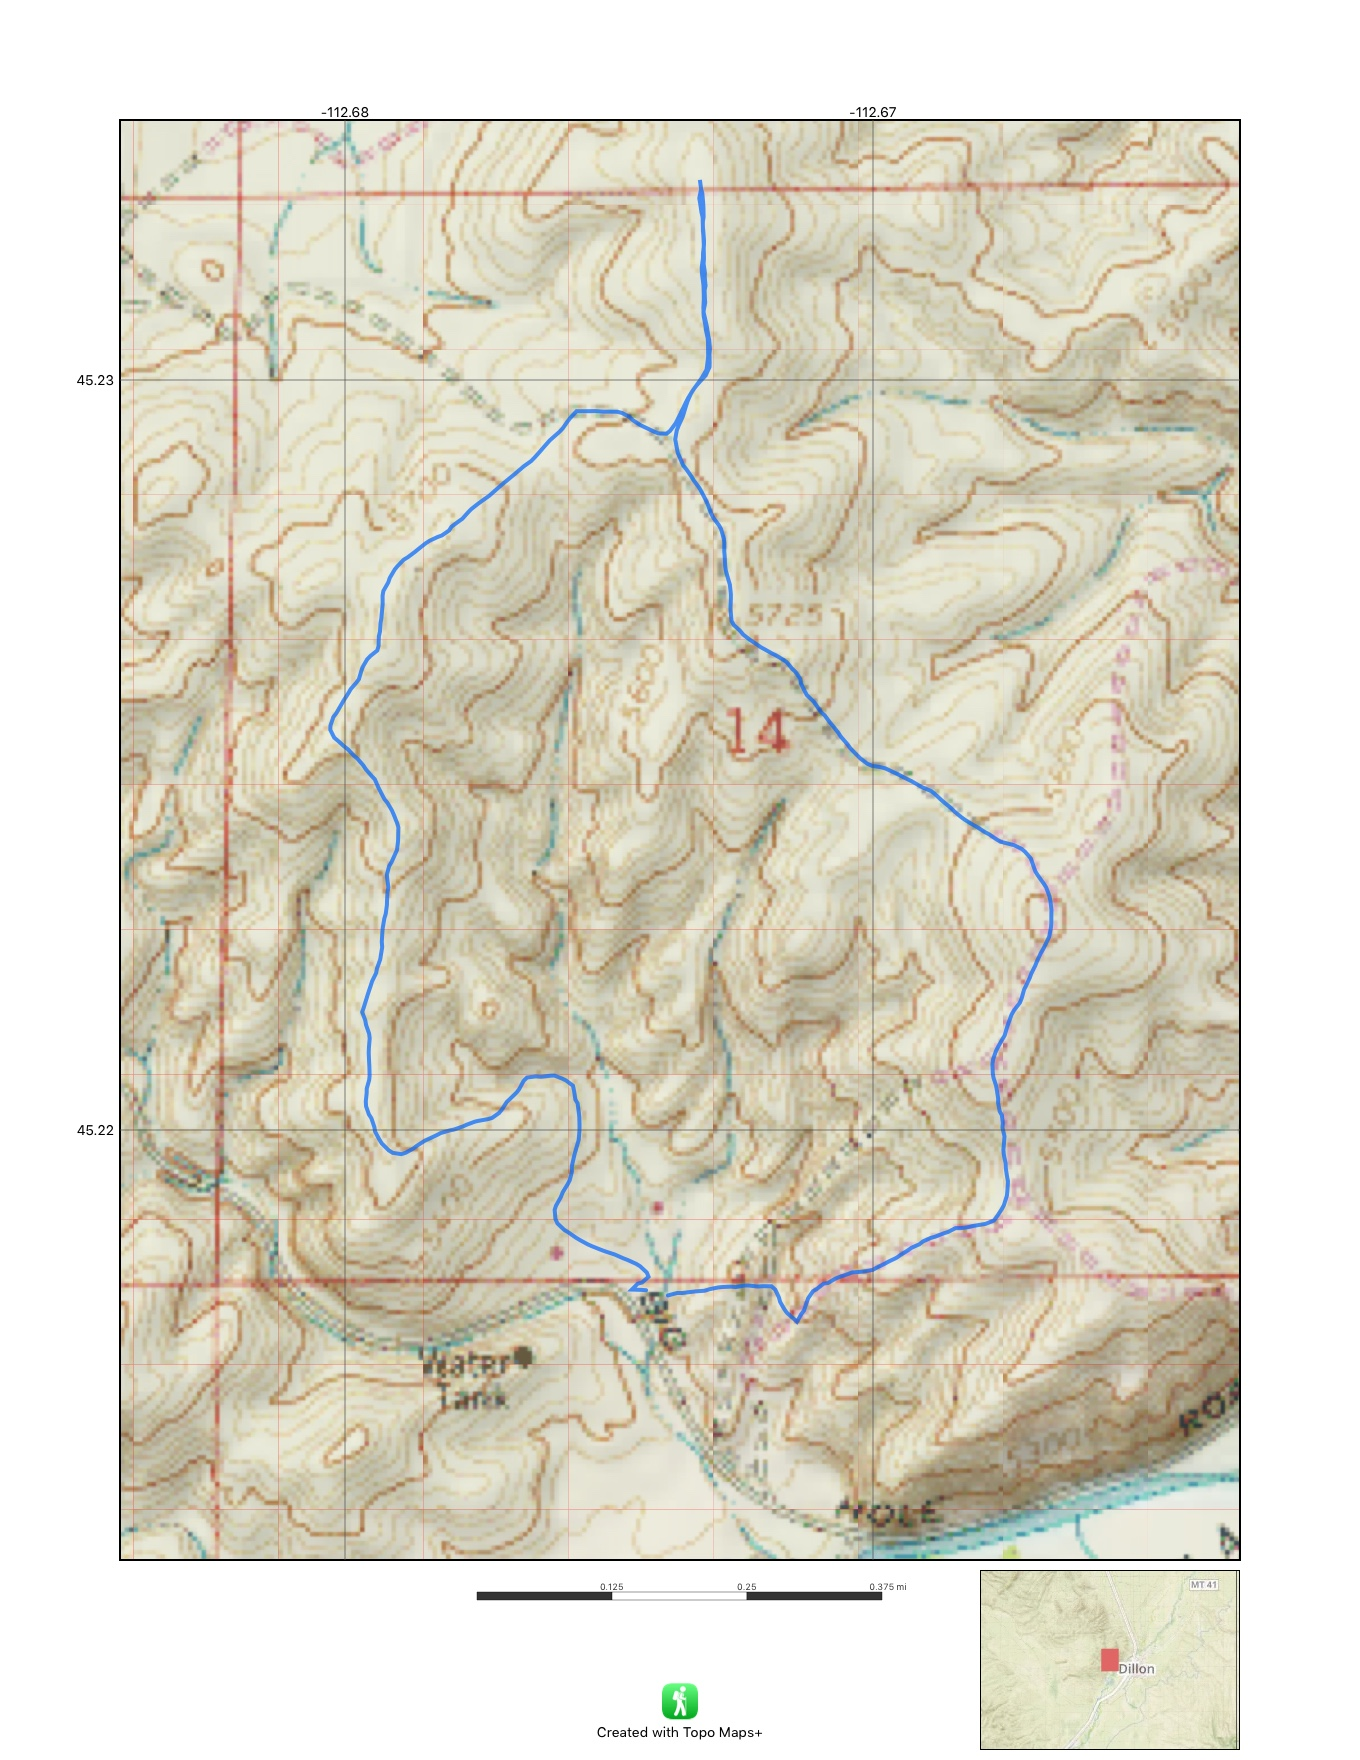 My favorite 3.11 mile route along the Dillon Town Overlook Trail takes about 1.25 hours at a pretty fair pace.